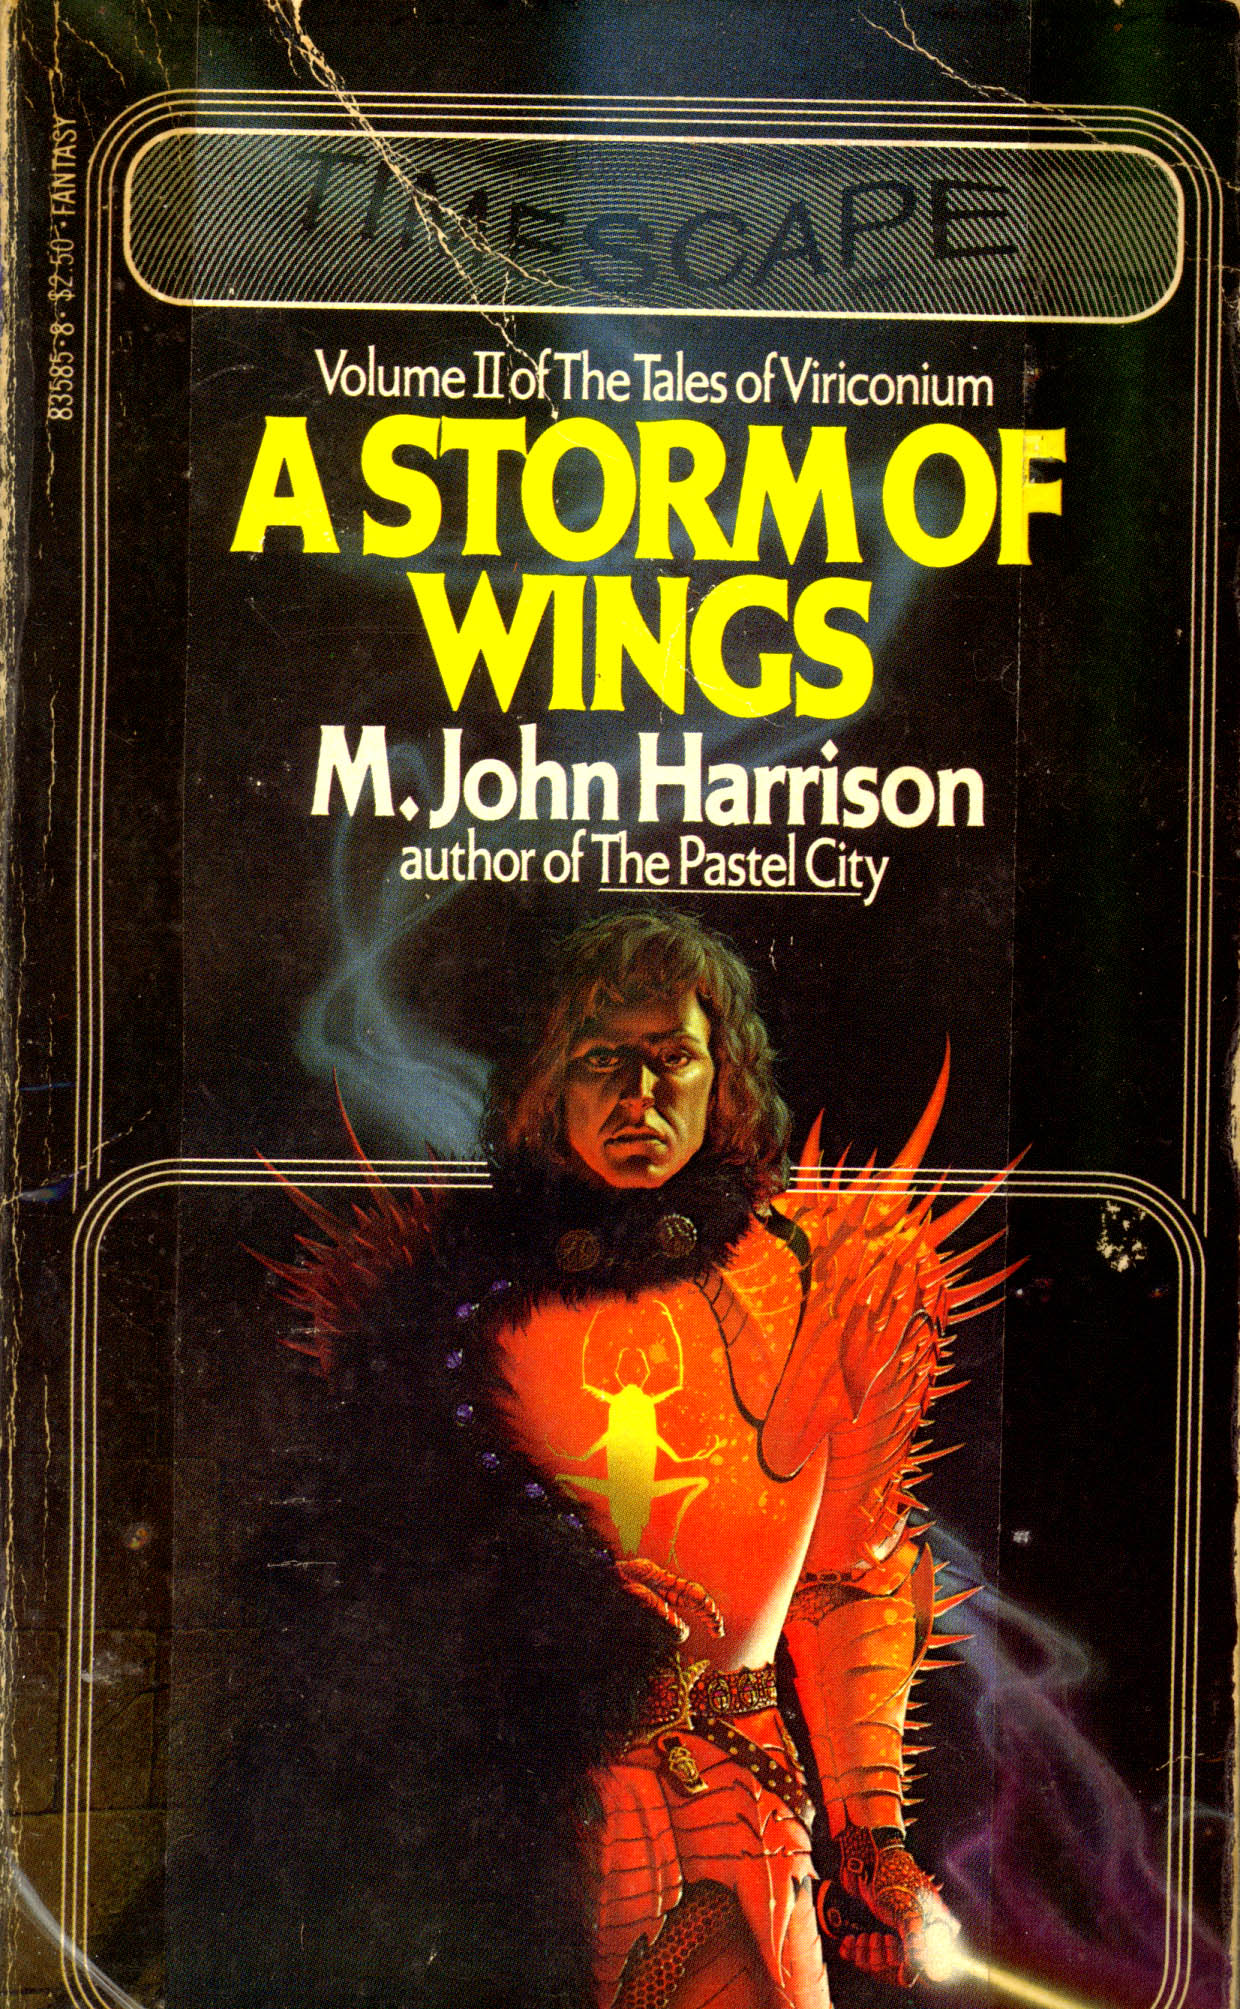 A Storm of Wings